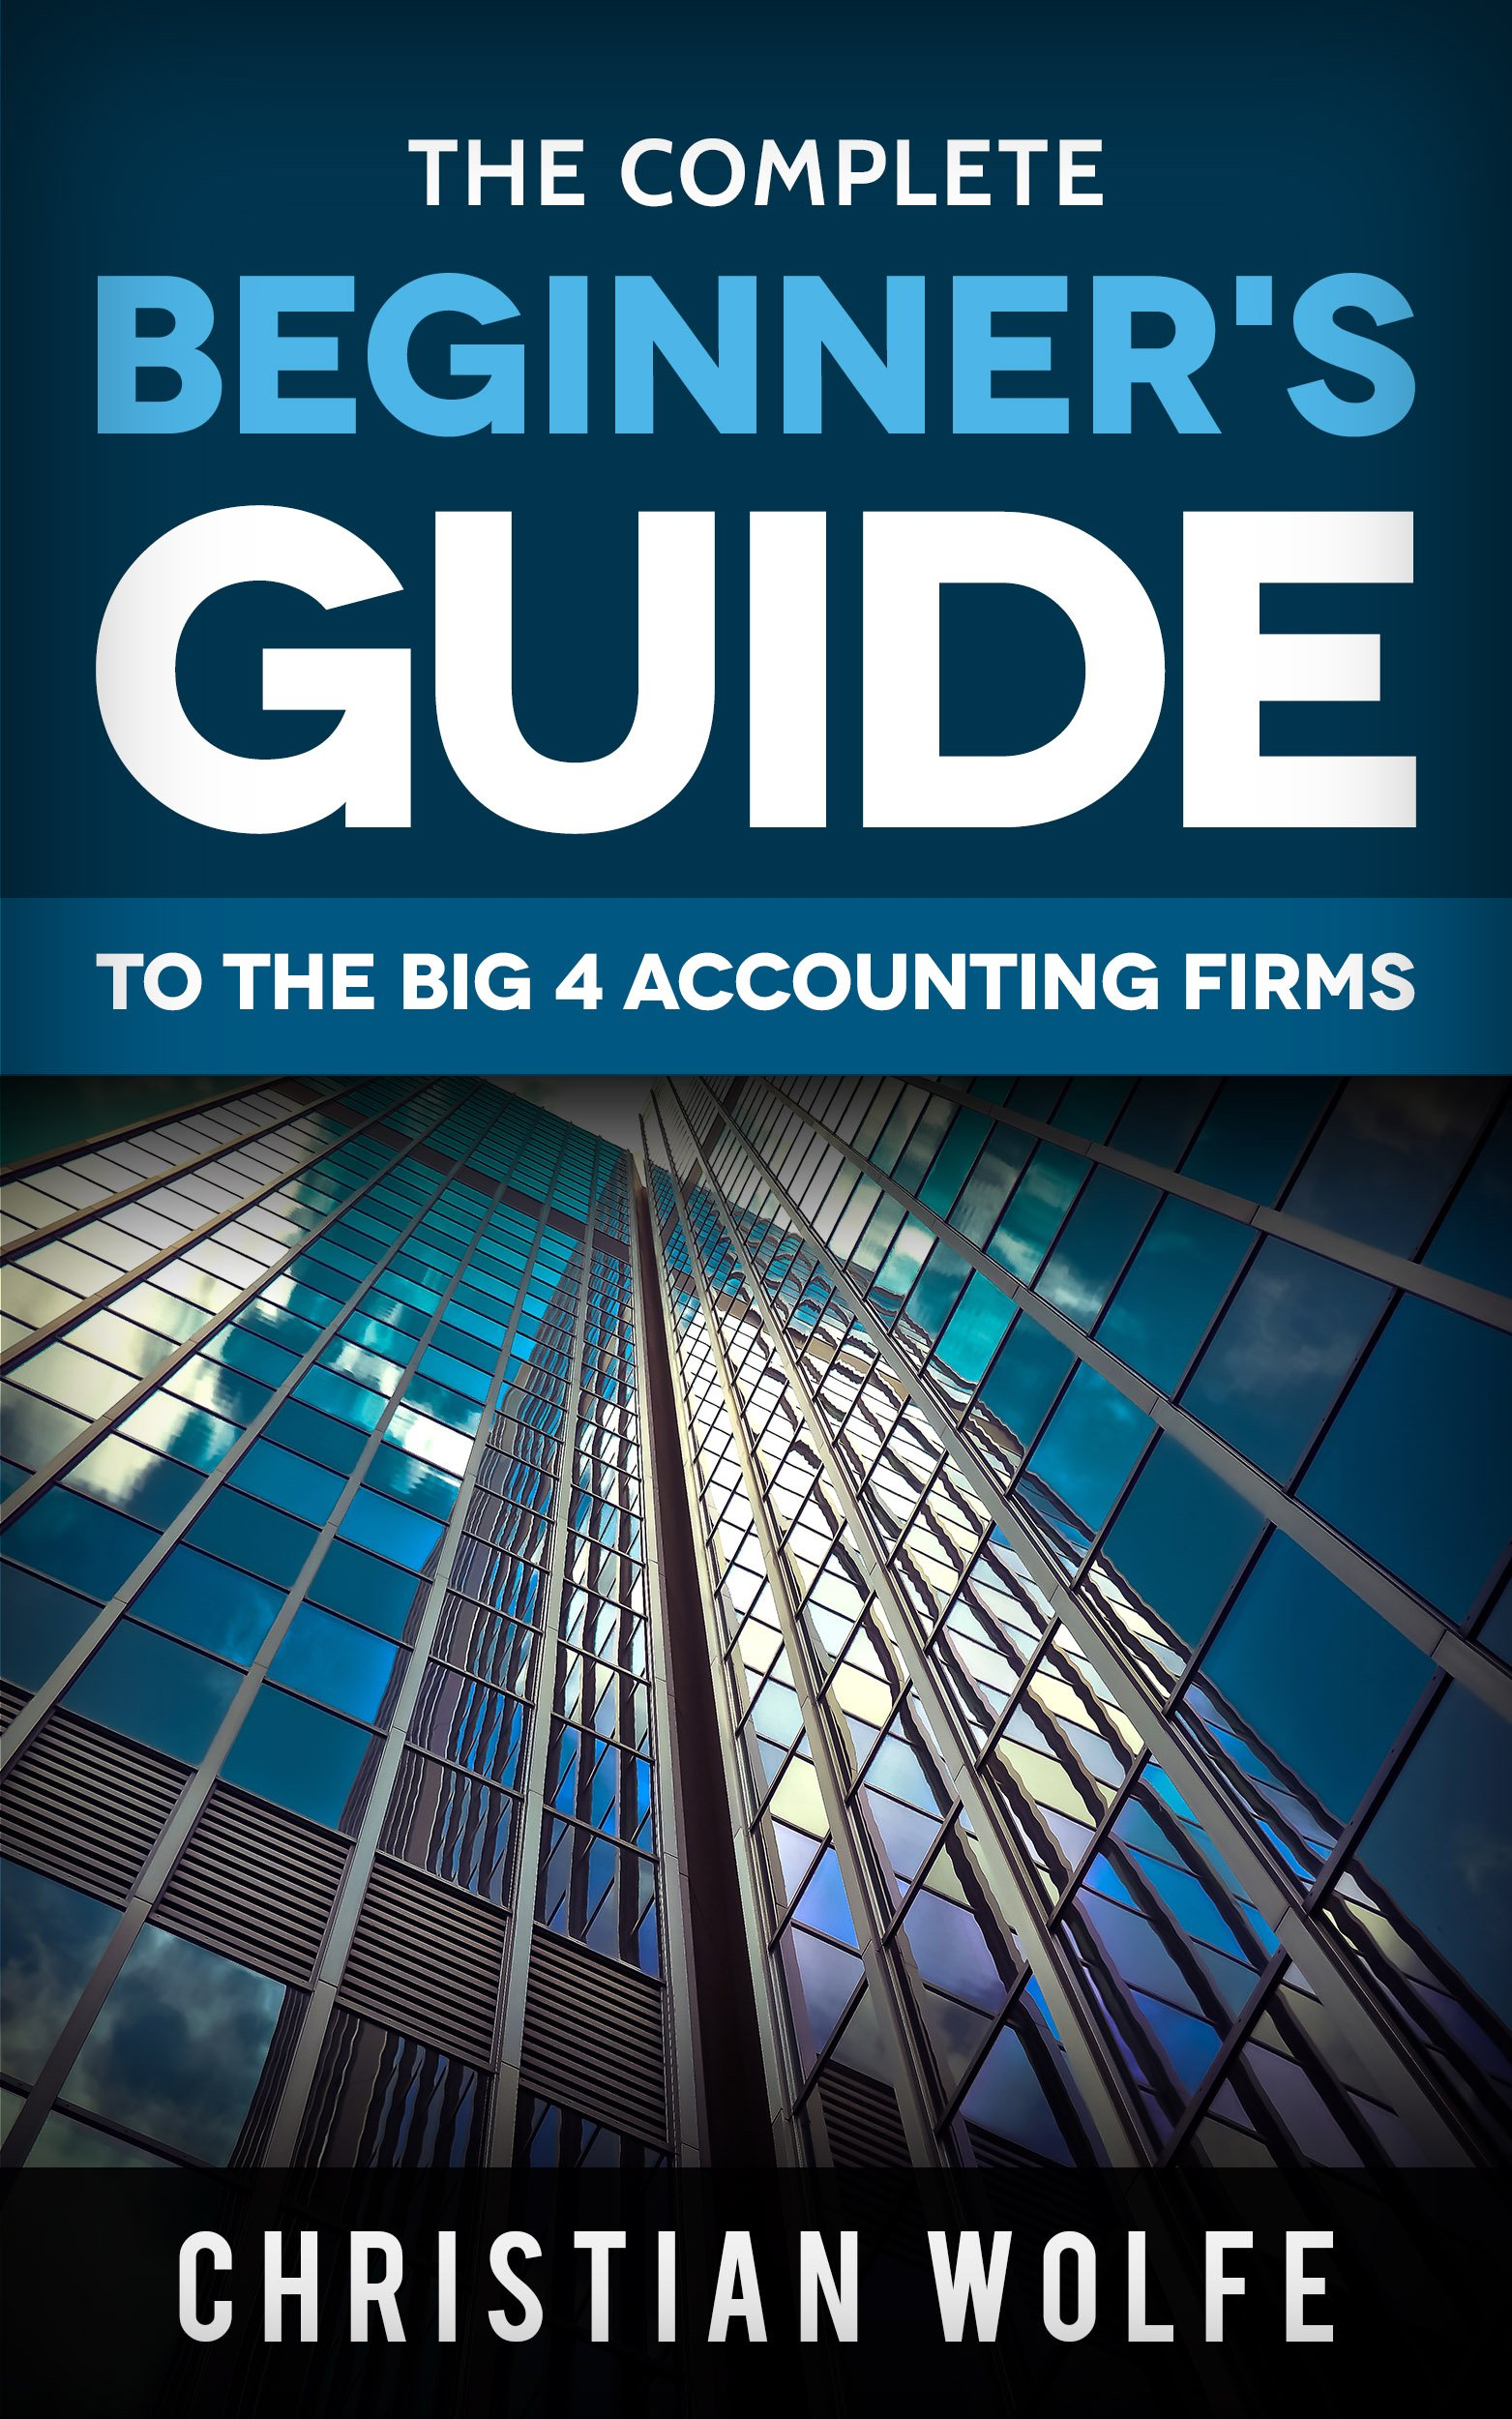 The Complete Beginner's Guide To The Big 4 Accounting Firms  Learn Everything You Need To Know About Deloitte PwC EY And KPMG  English Edition